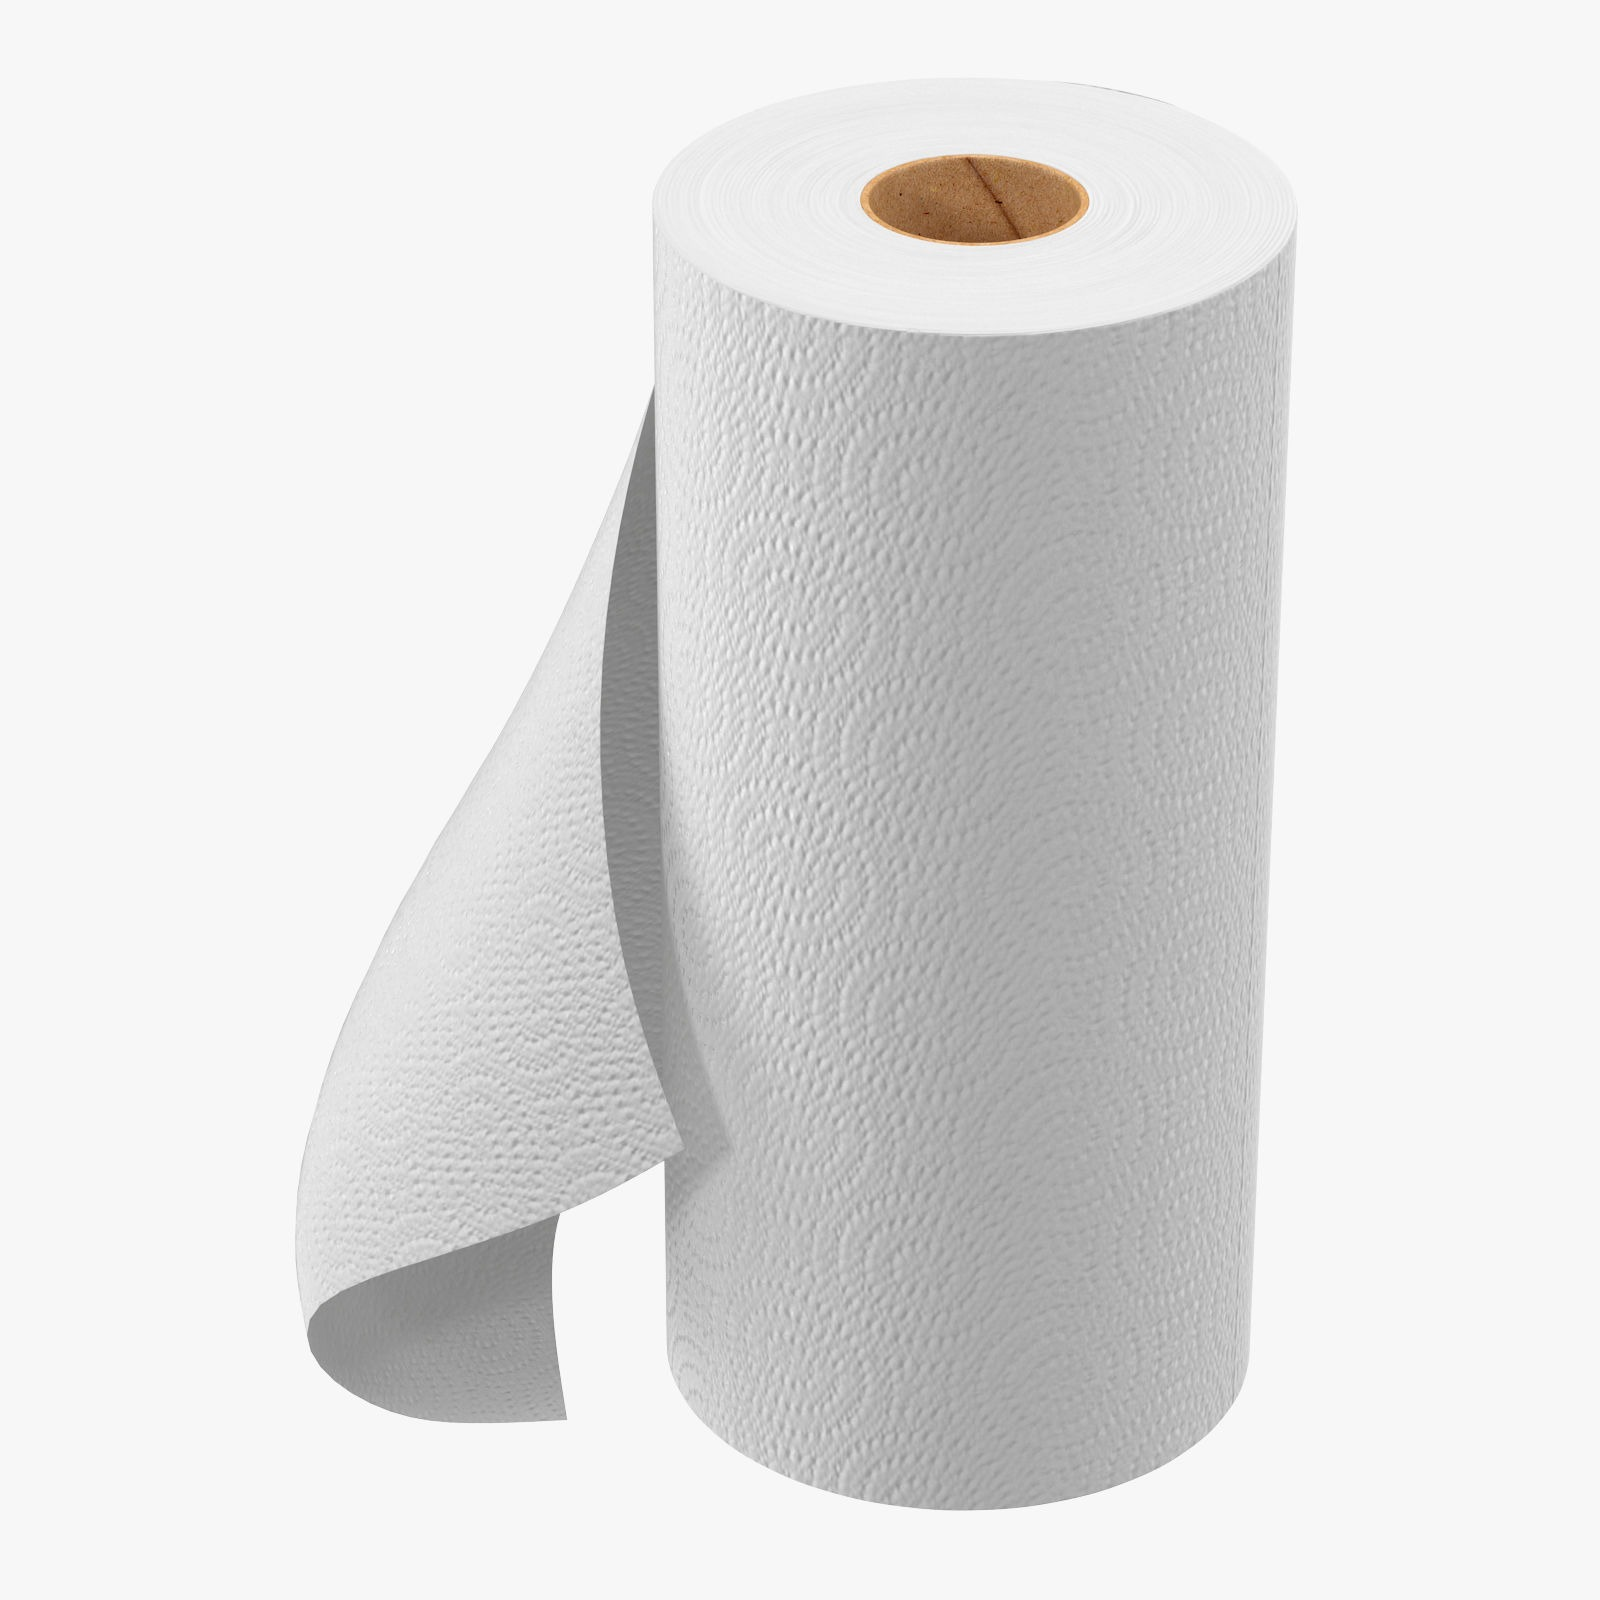 3d model specifications - Paper Towel Roll